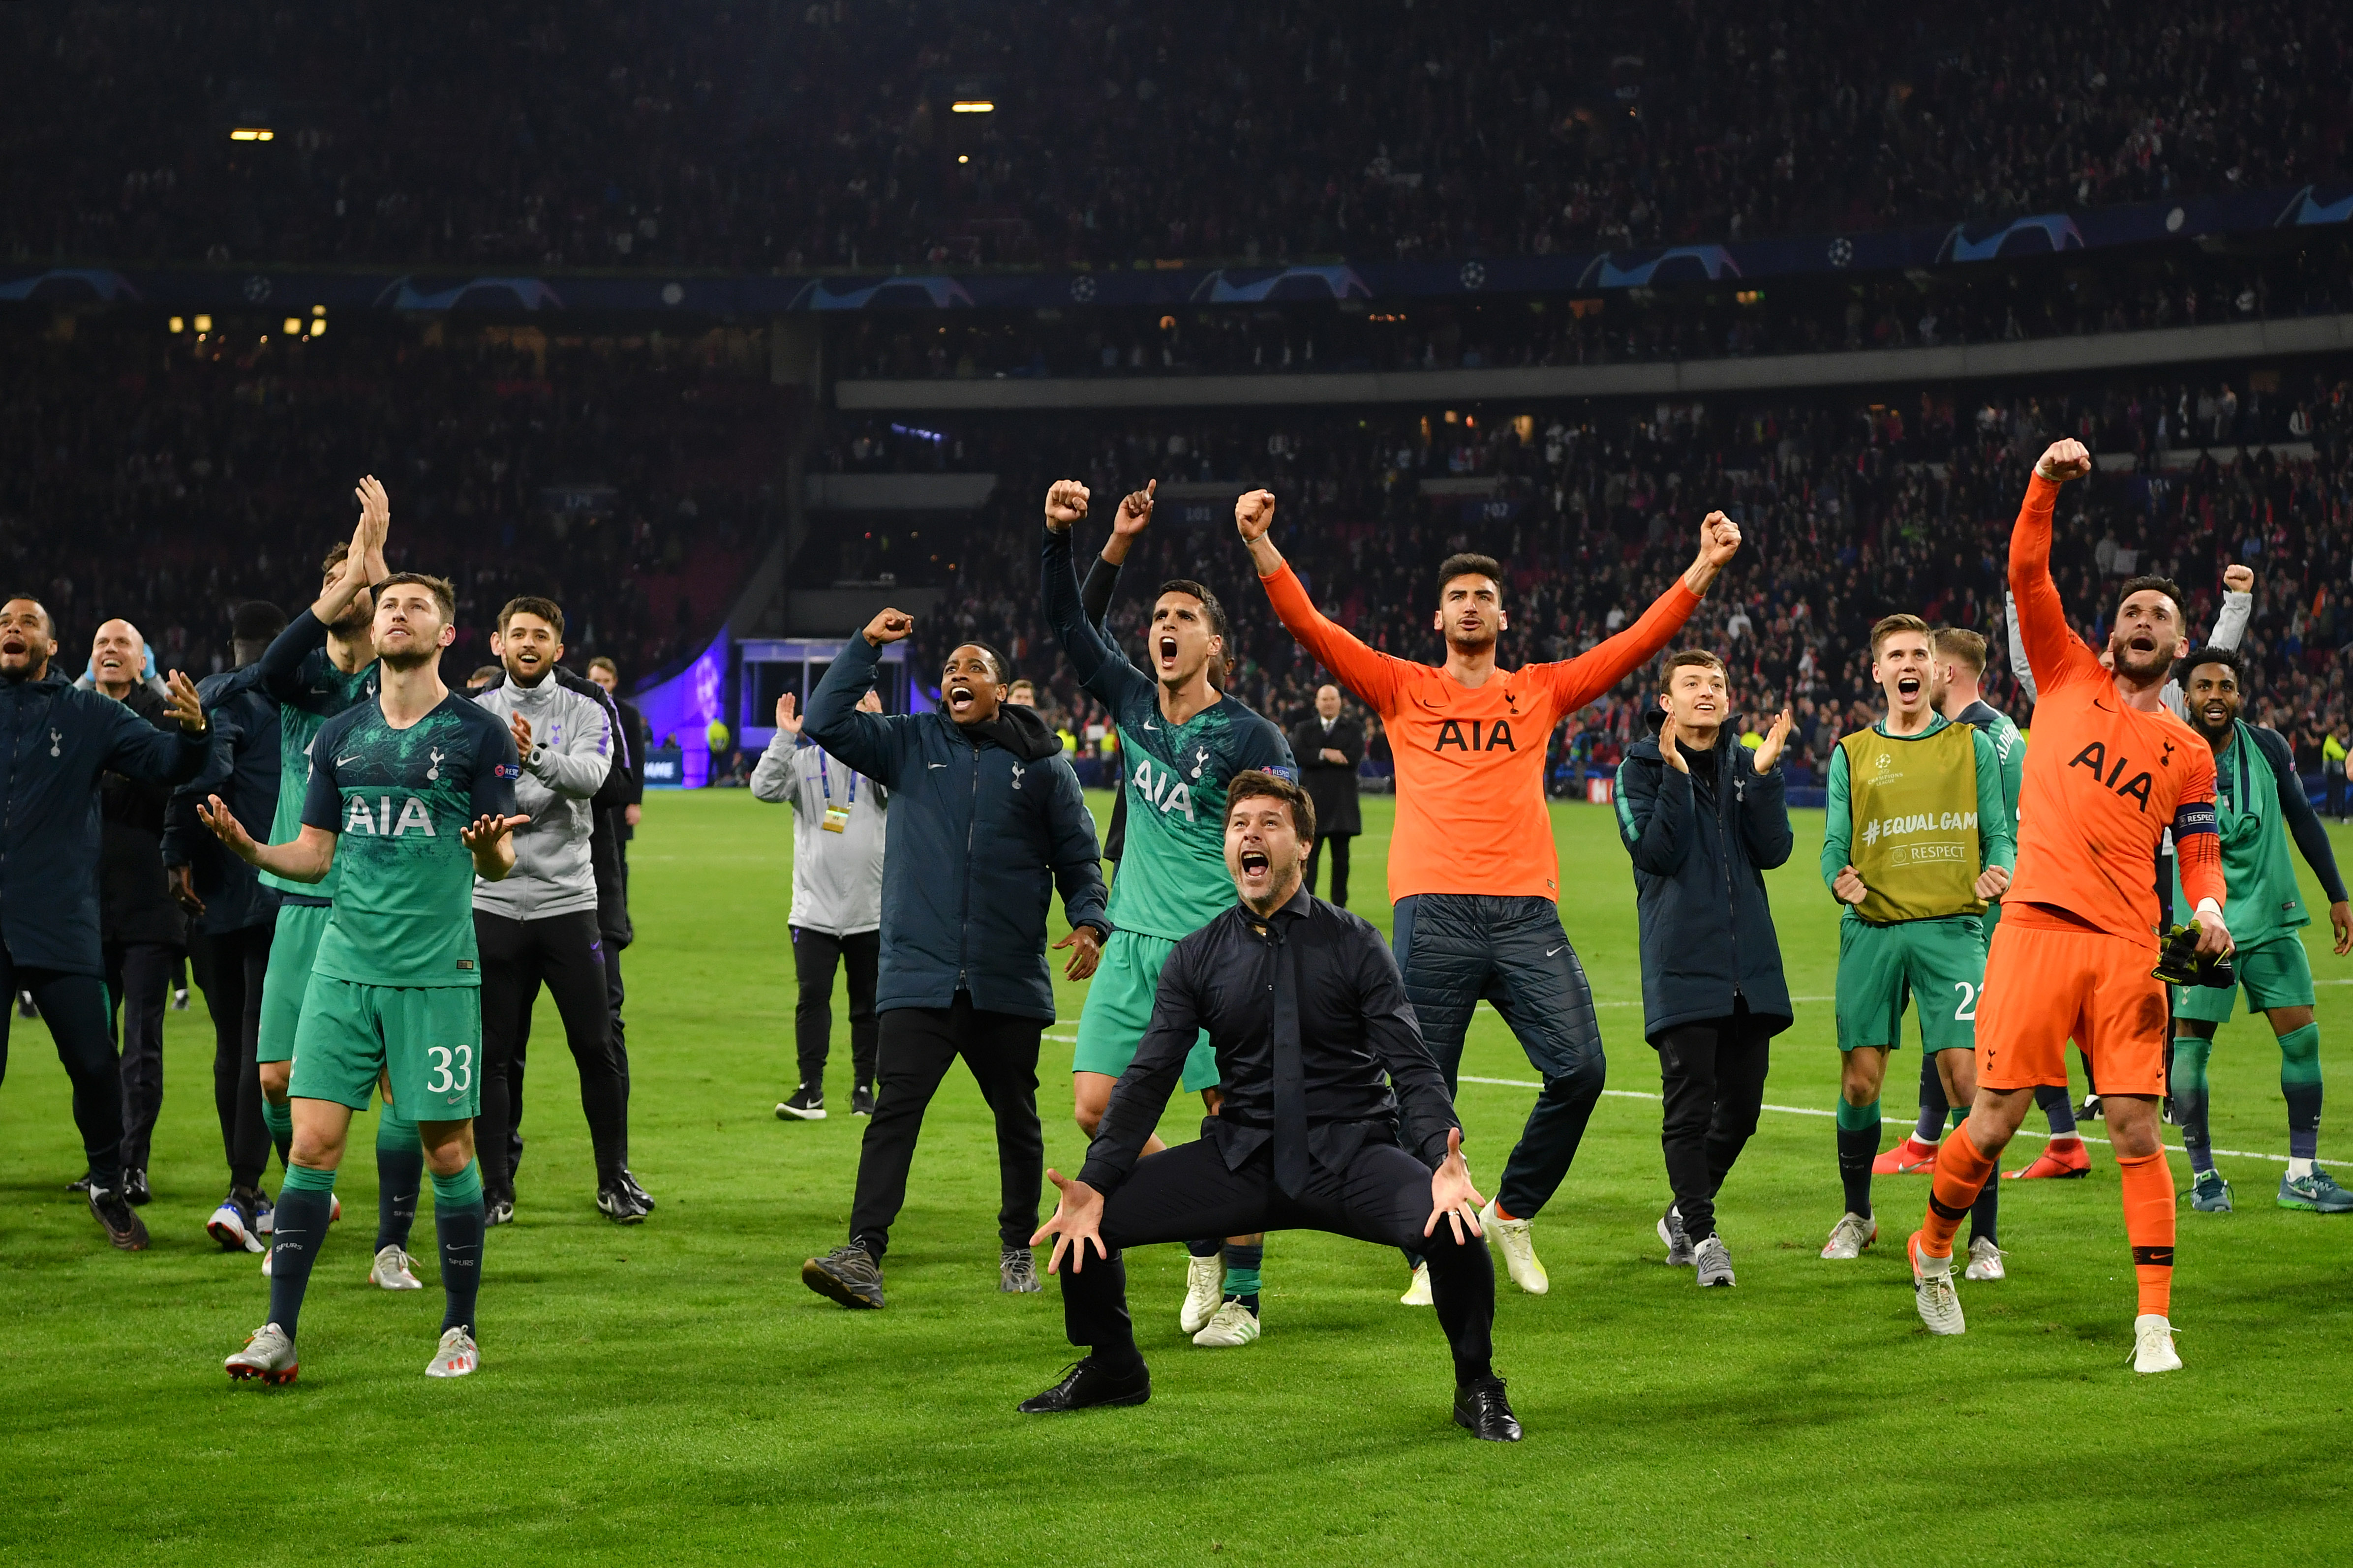 Mauricio Pochettino, manager of Tottenham Hotspur, celebrates victory with his team after the UEFA Champions League semi-final second leg match between Ajax and Tottenham Hotspur at the Johan Cruyff Arena.